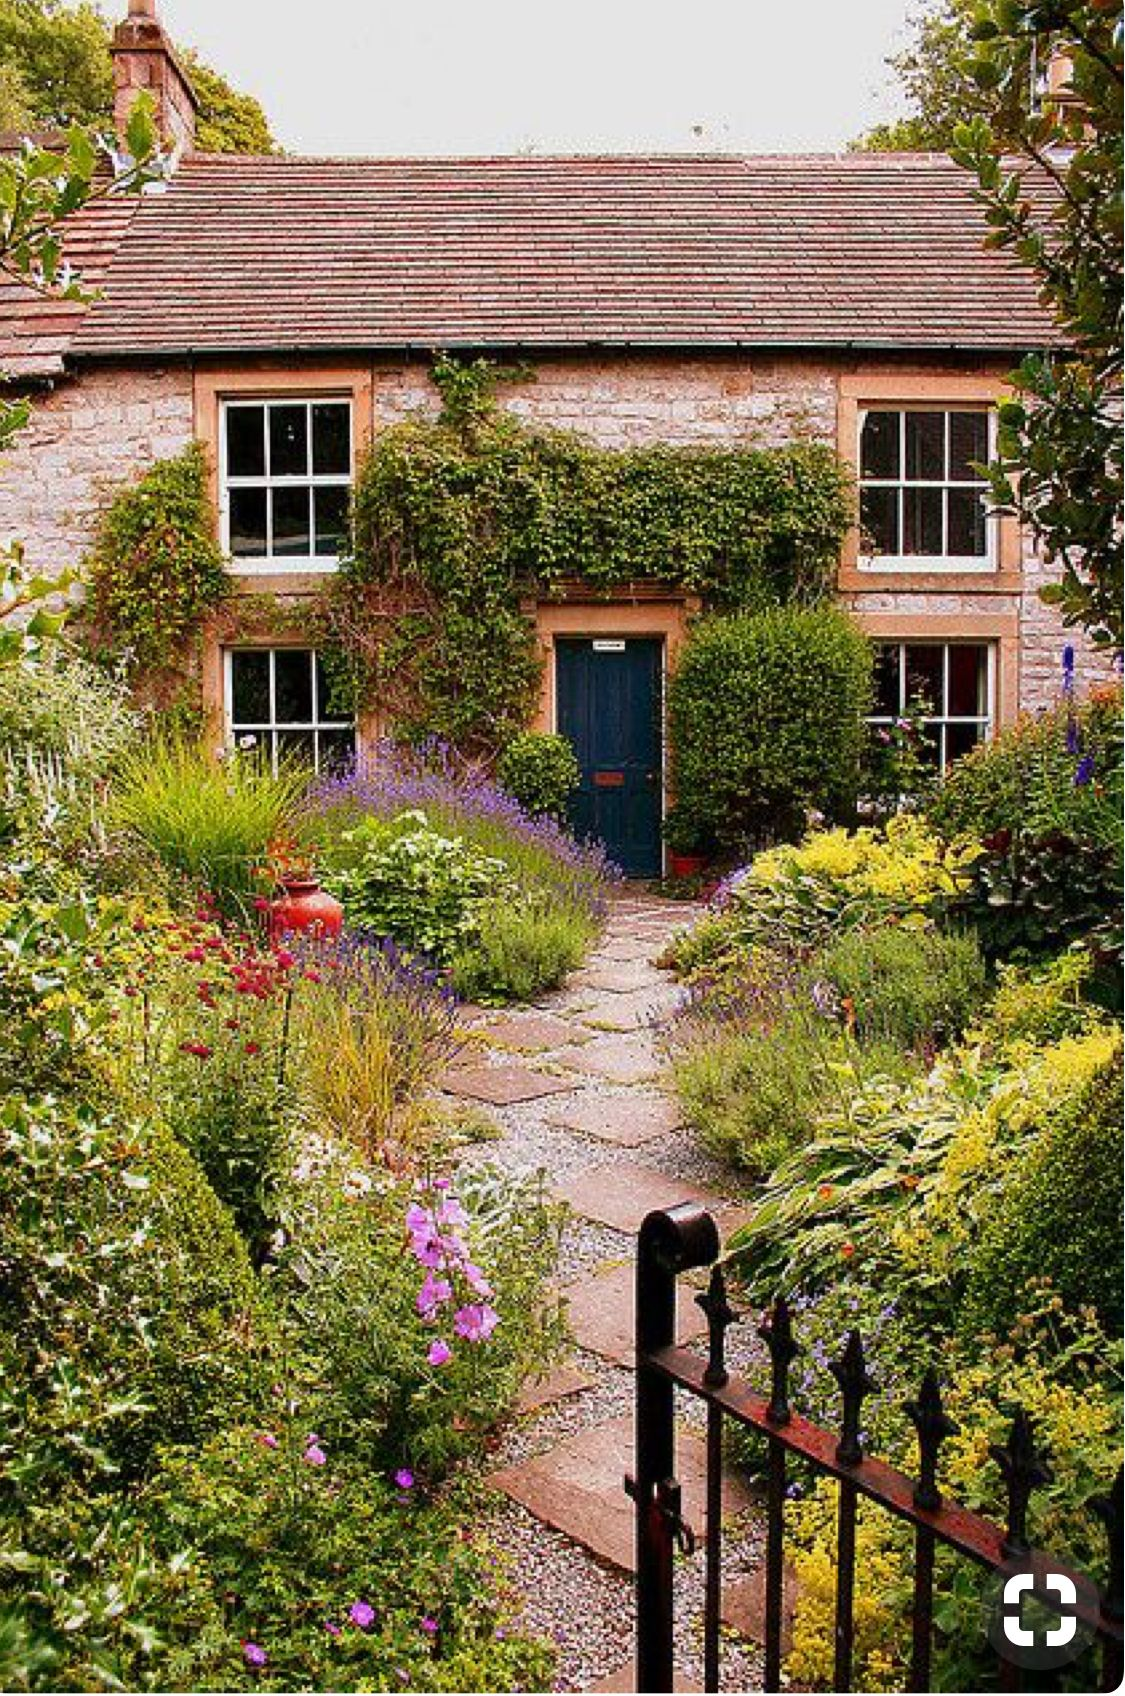 Pin by Katrina Edwards on Cottages | Pinterest | English cottages ...